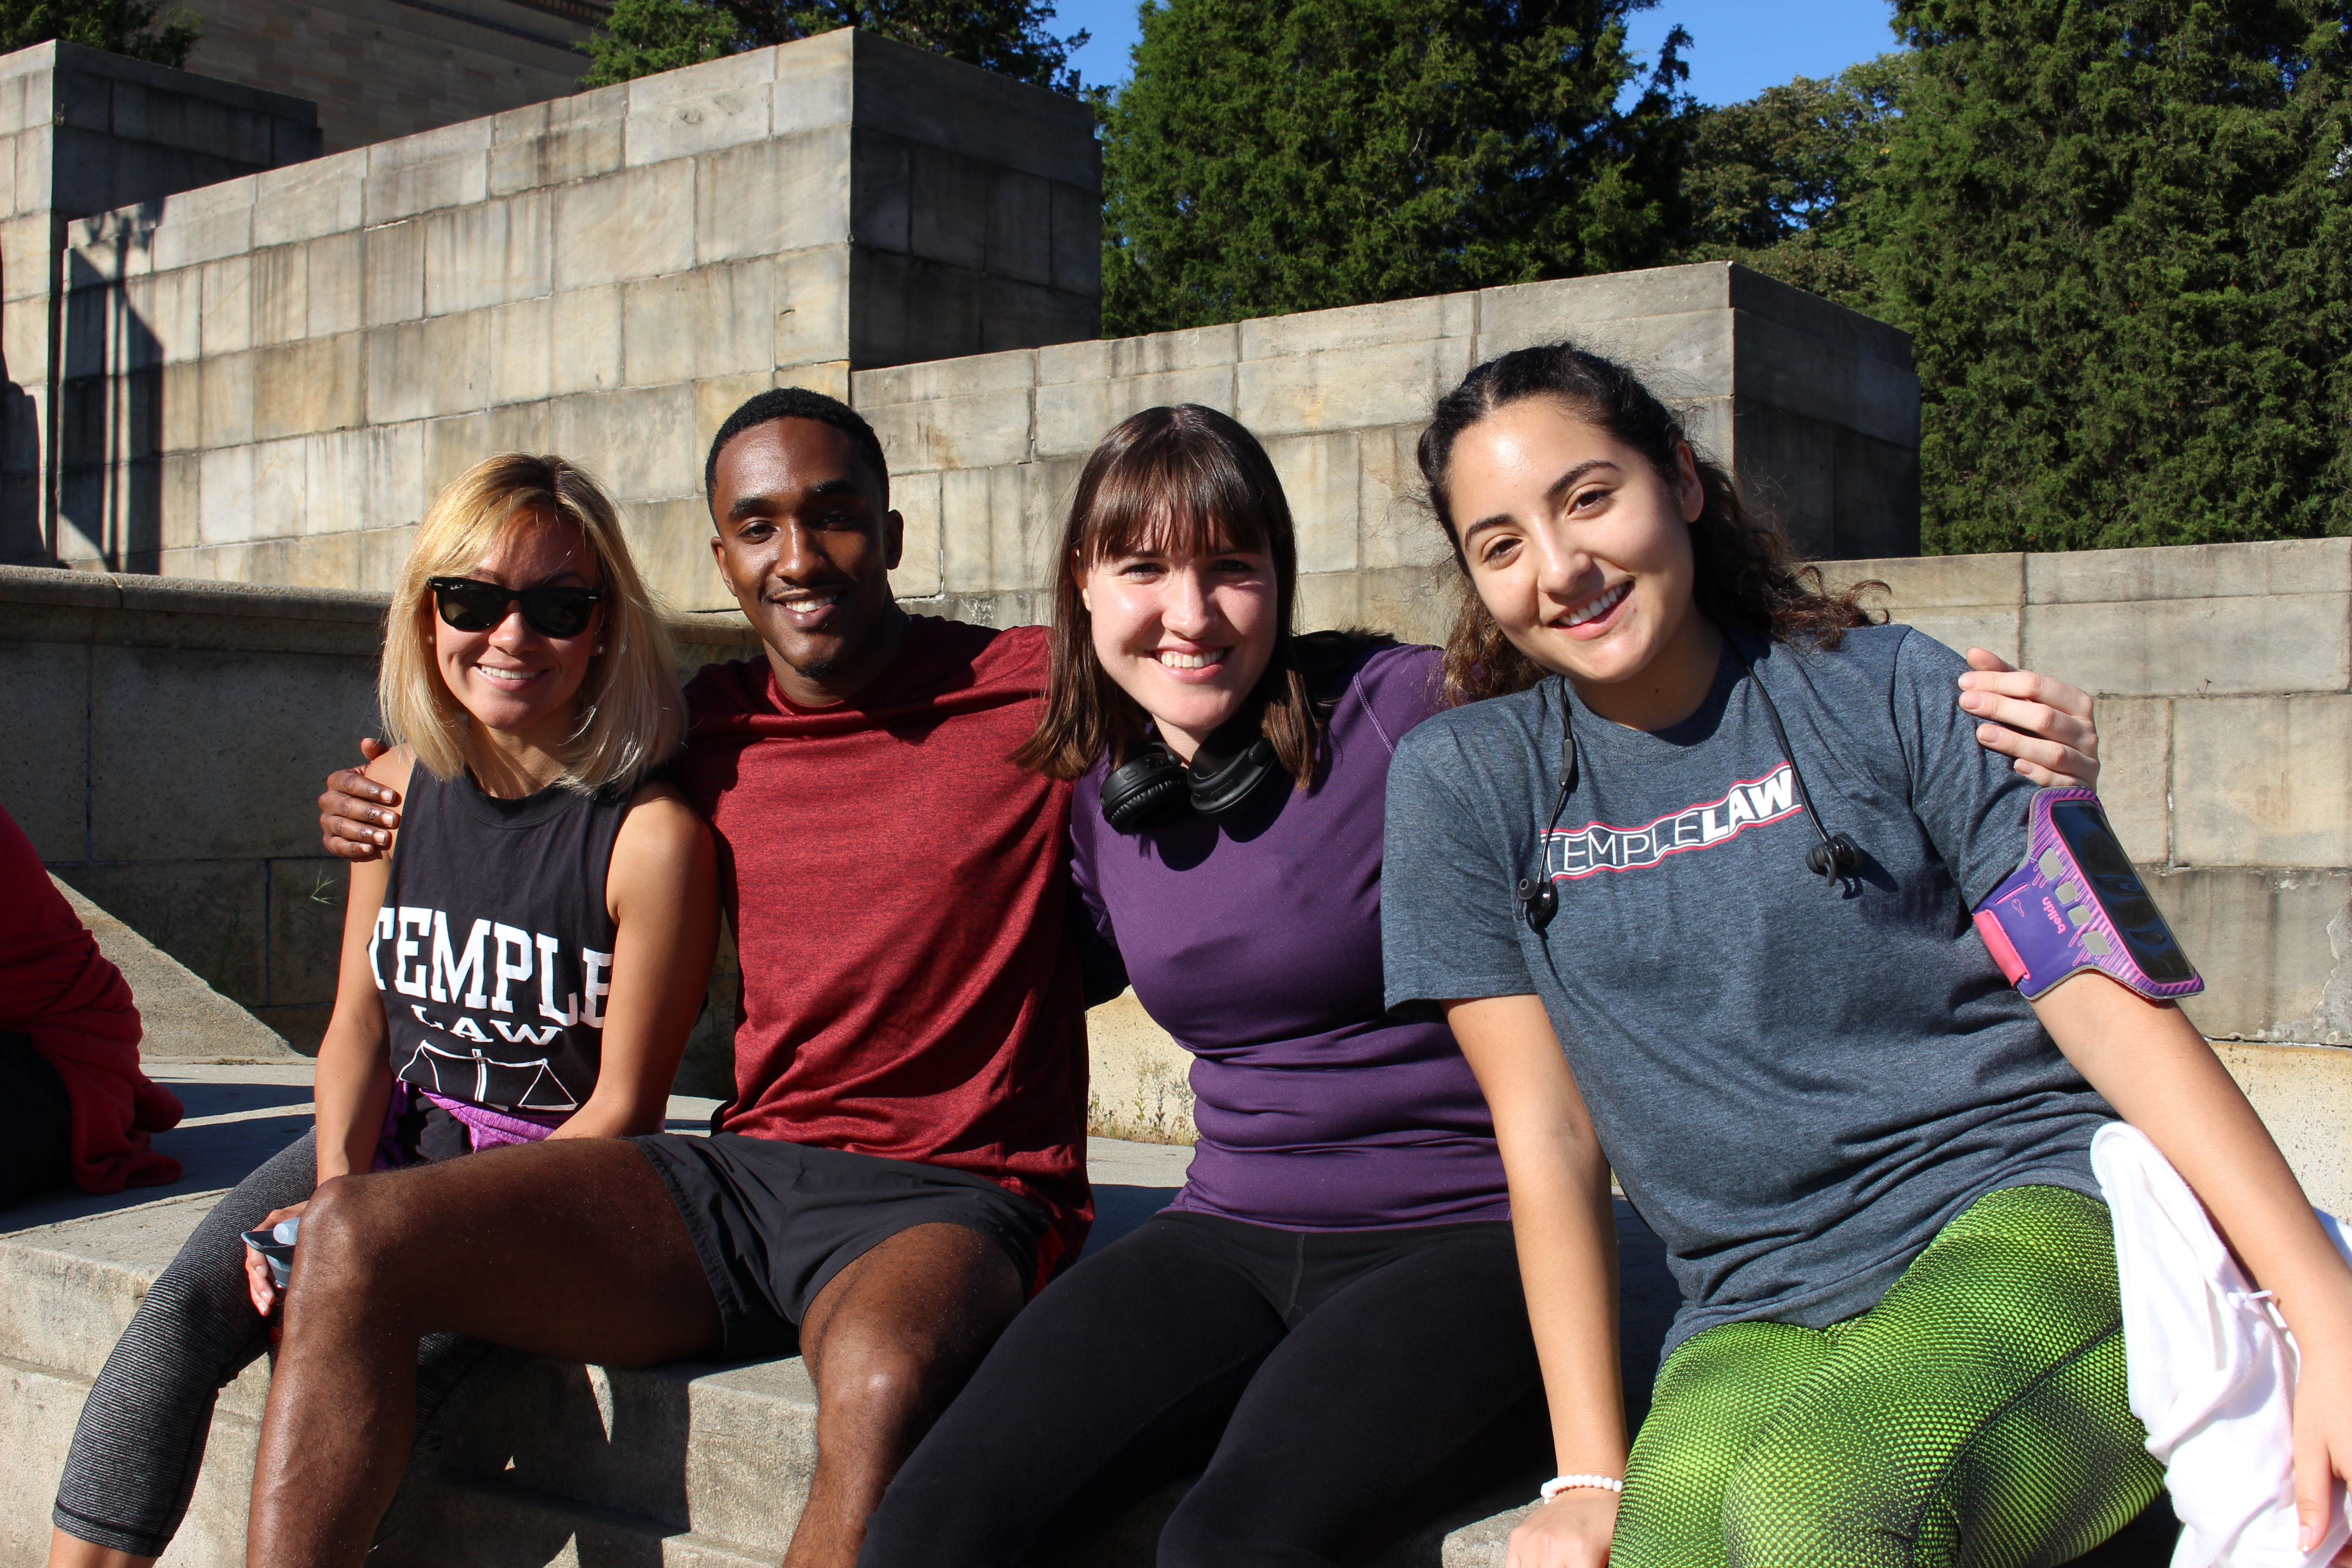 Temple Law students enjoy a beautiful day in Philadelphia as a part of the Fun Run wellness event.